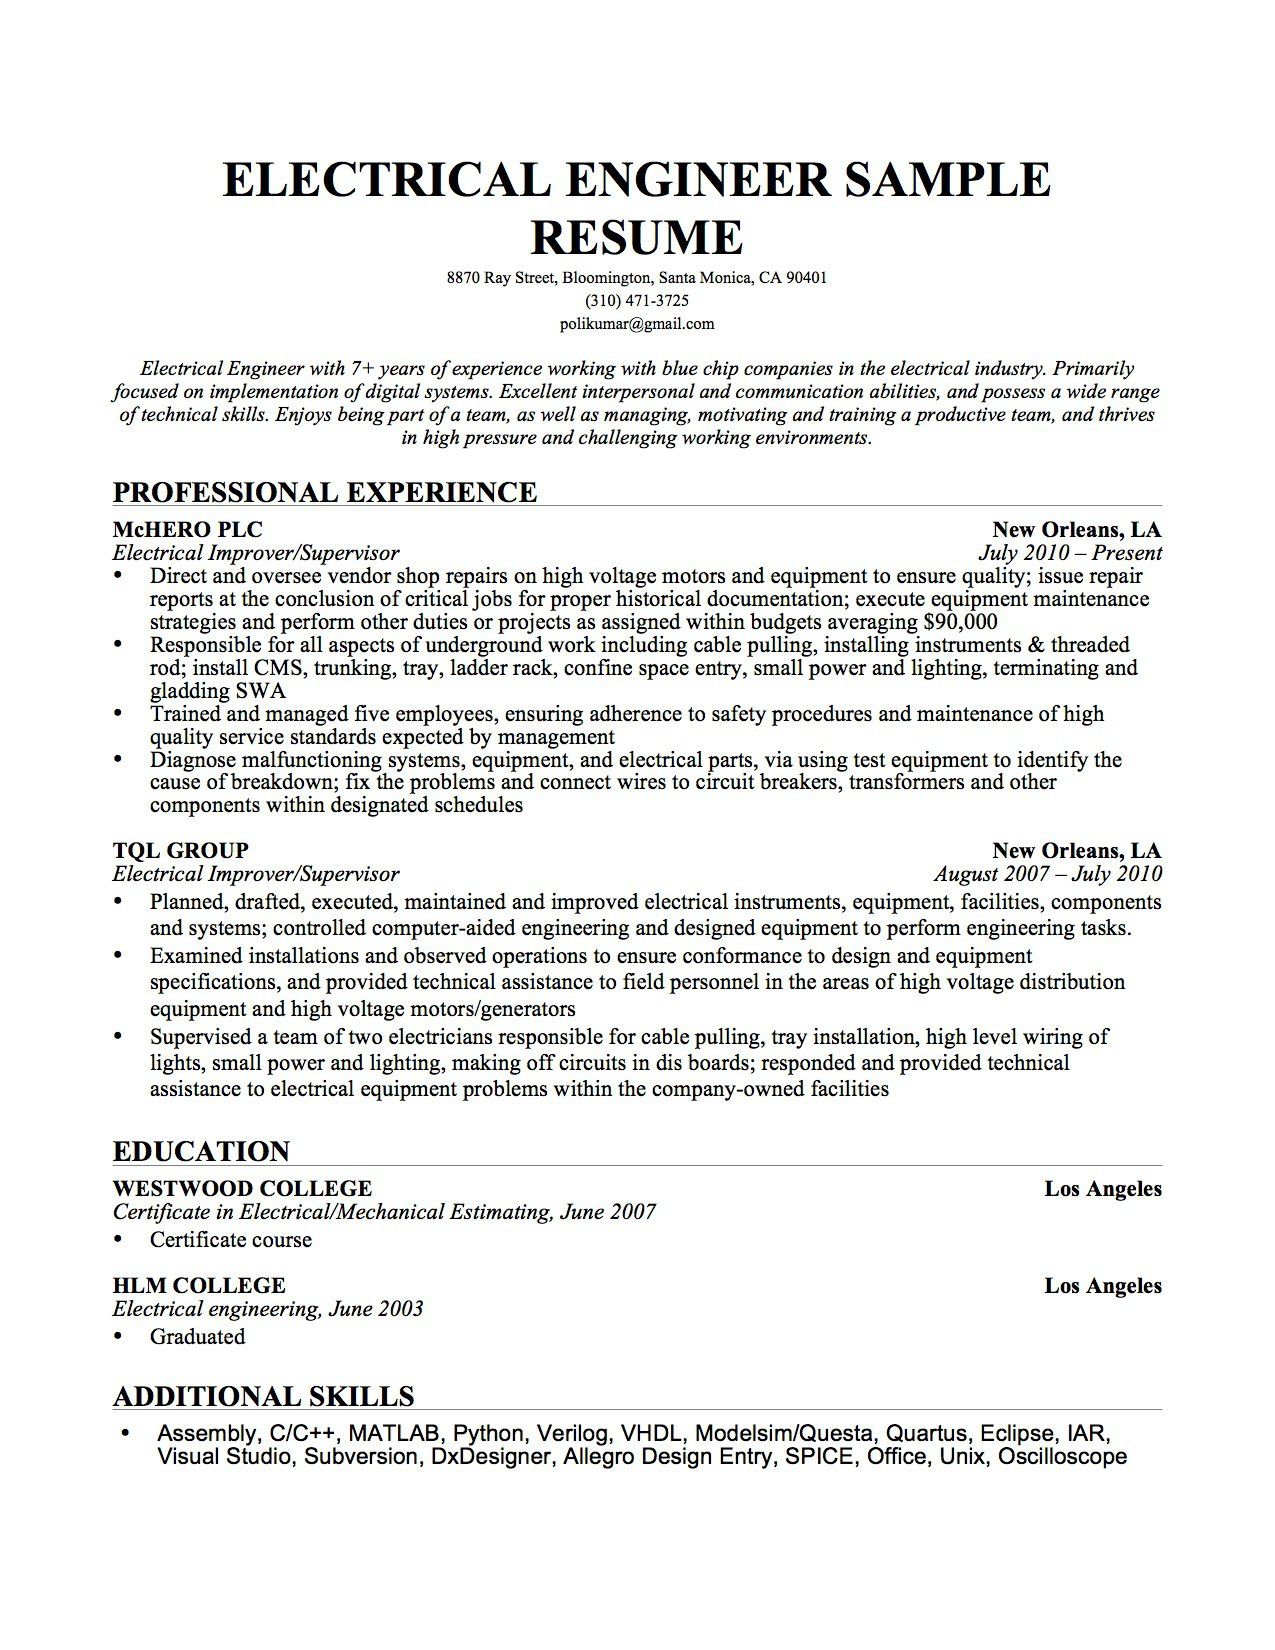 engineer sample resume equipment fixed biomedical